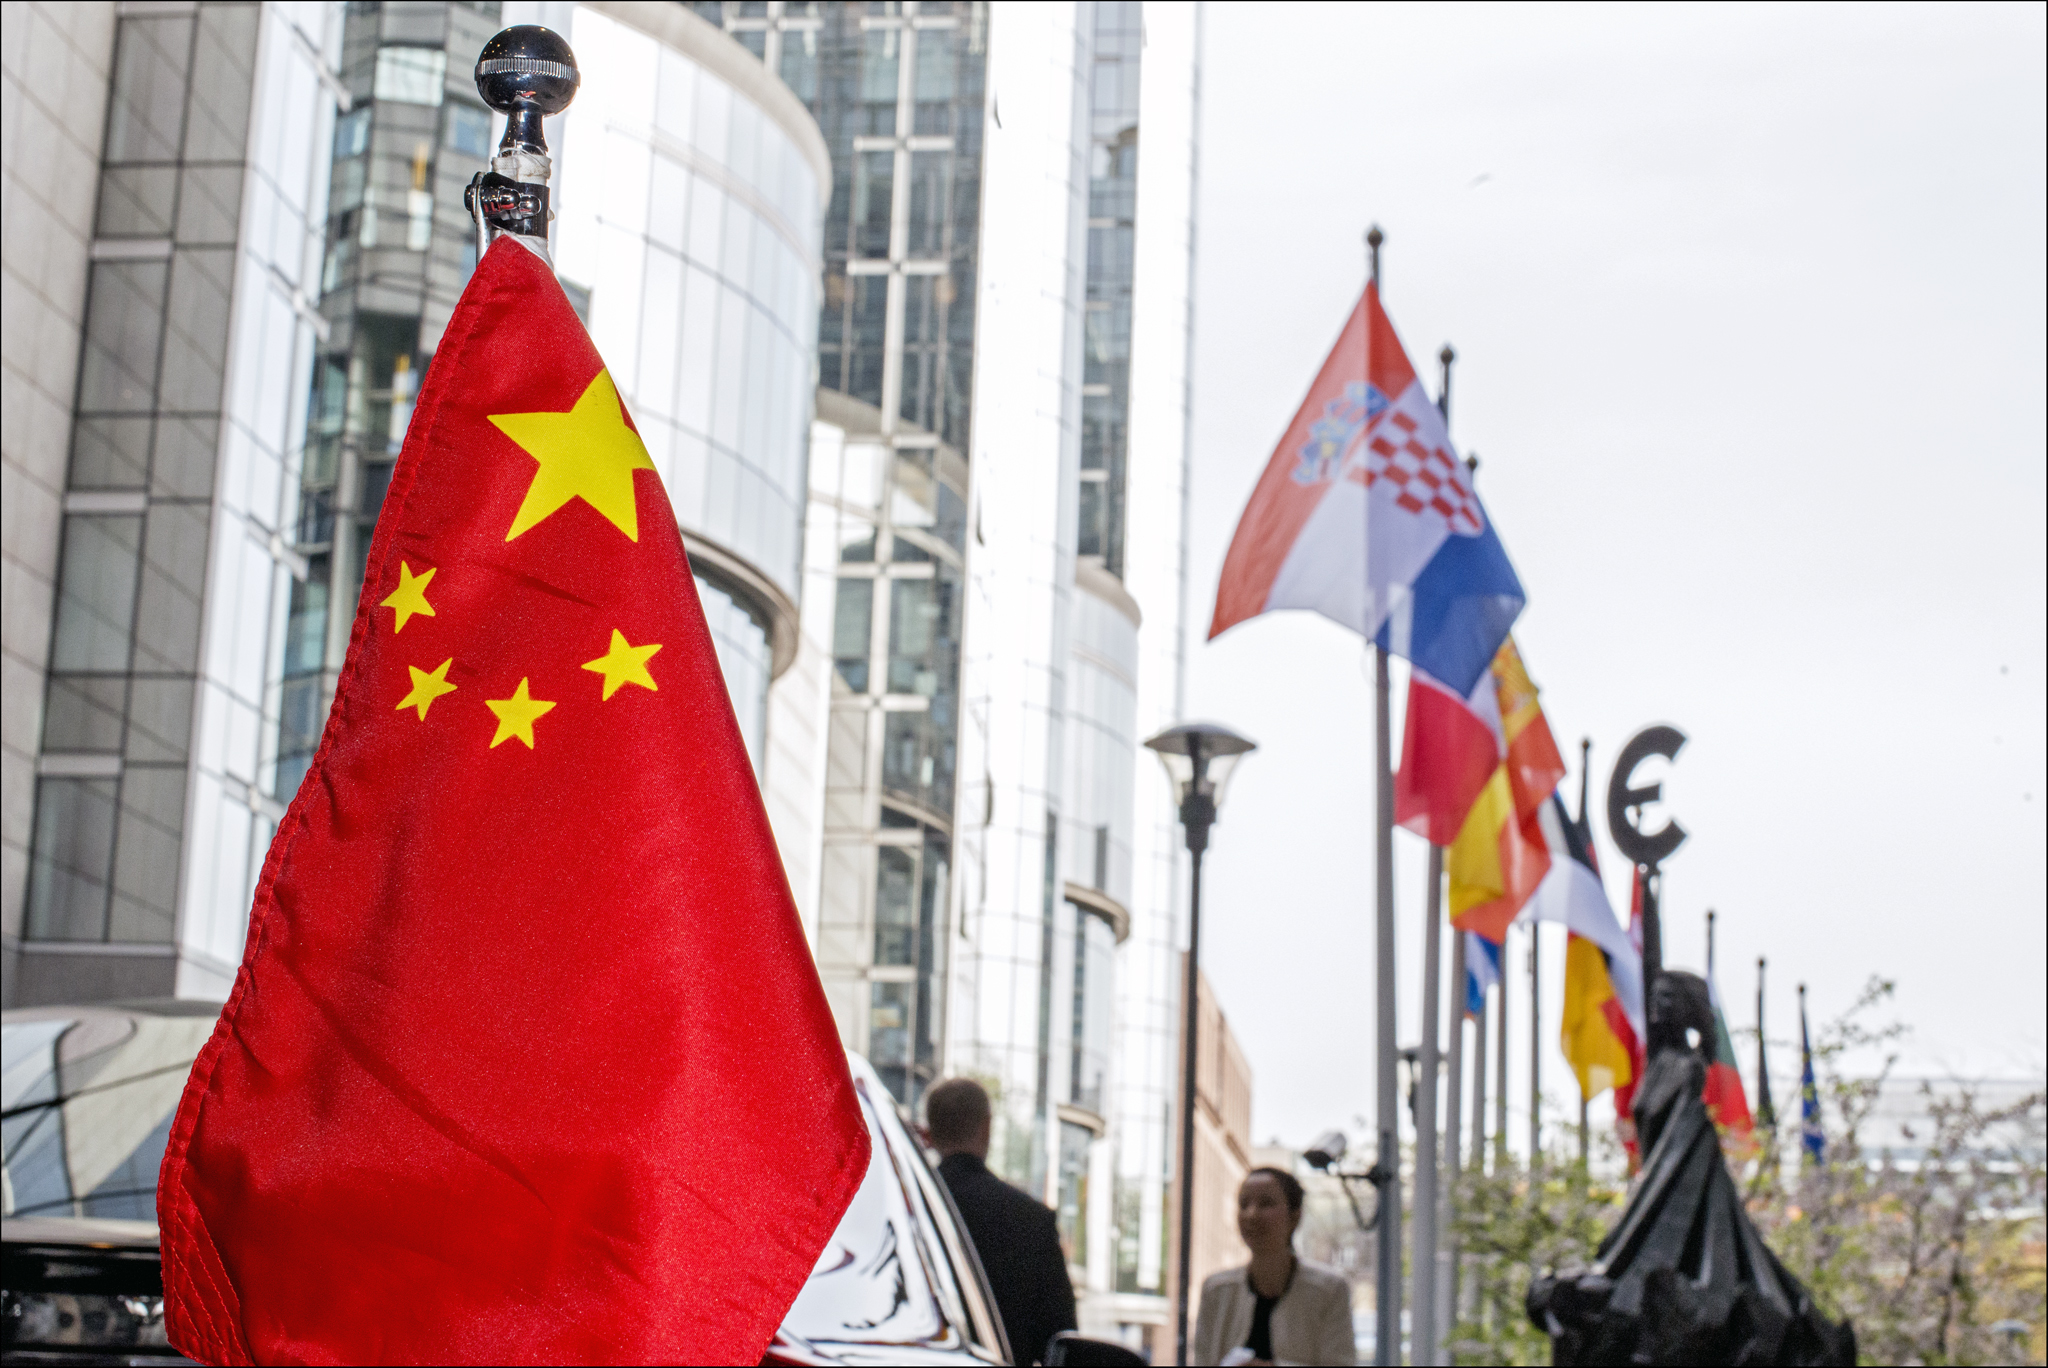 Public Opinion on China in European and V4 Countries